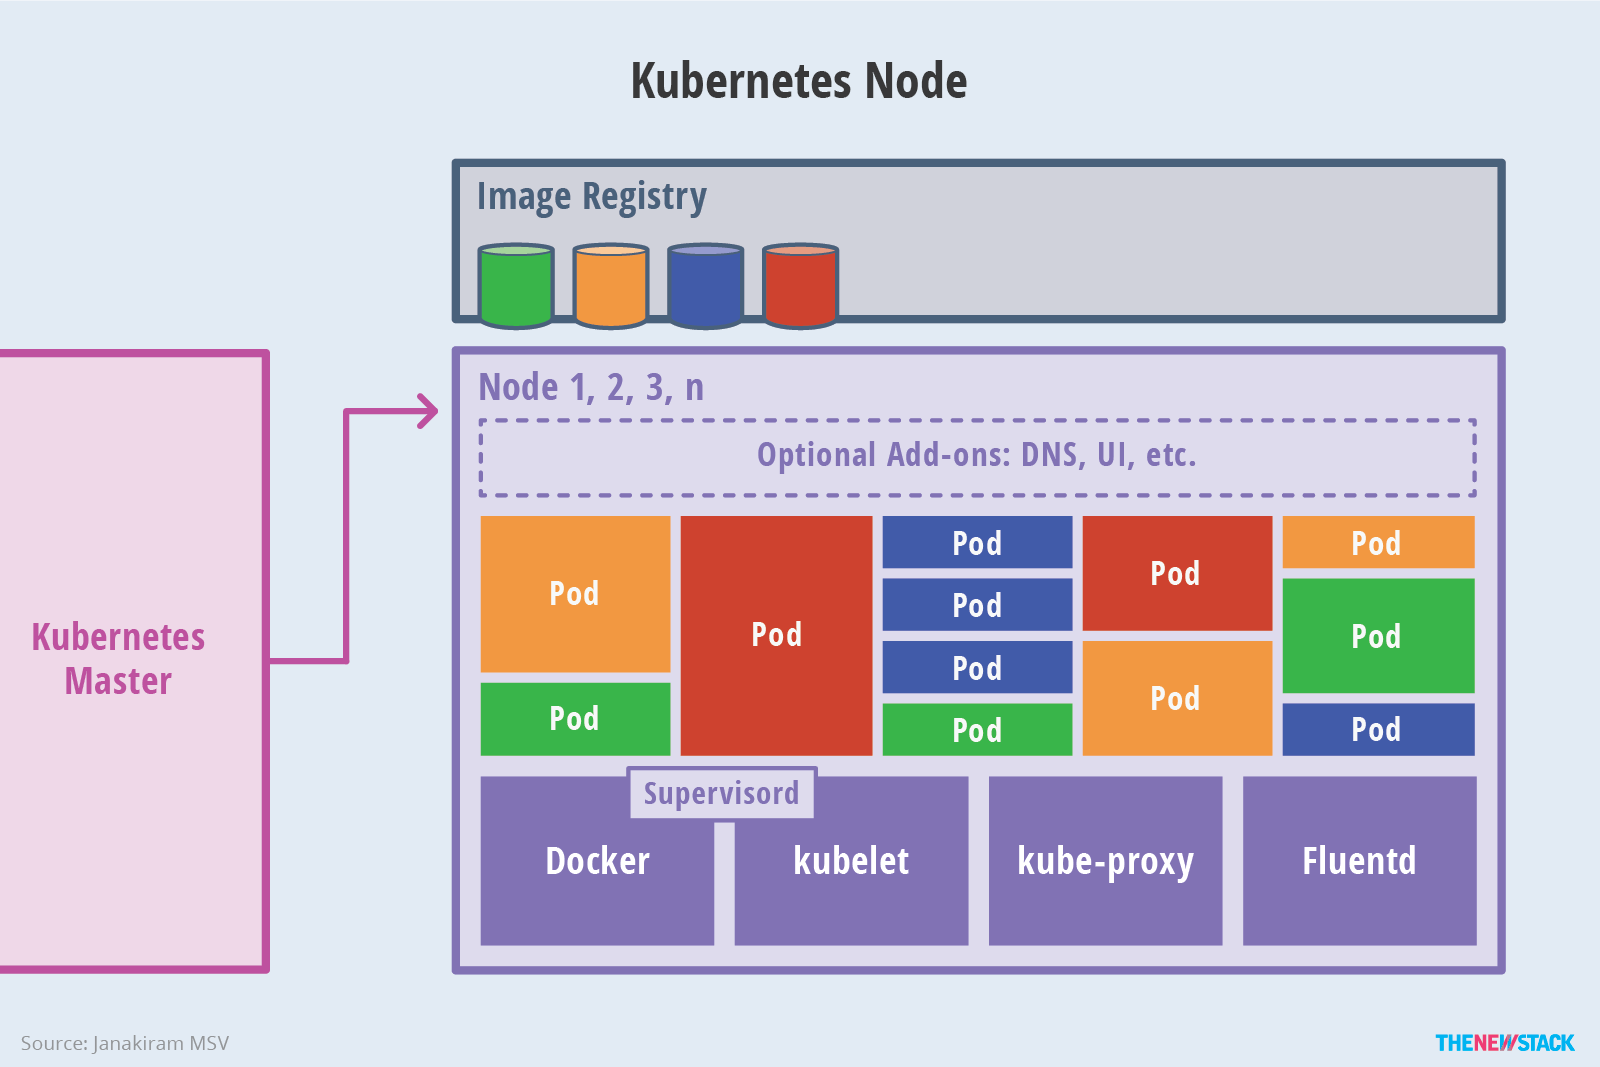 Figure 4: Nodes expose compute, networking and storage resources to applications.